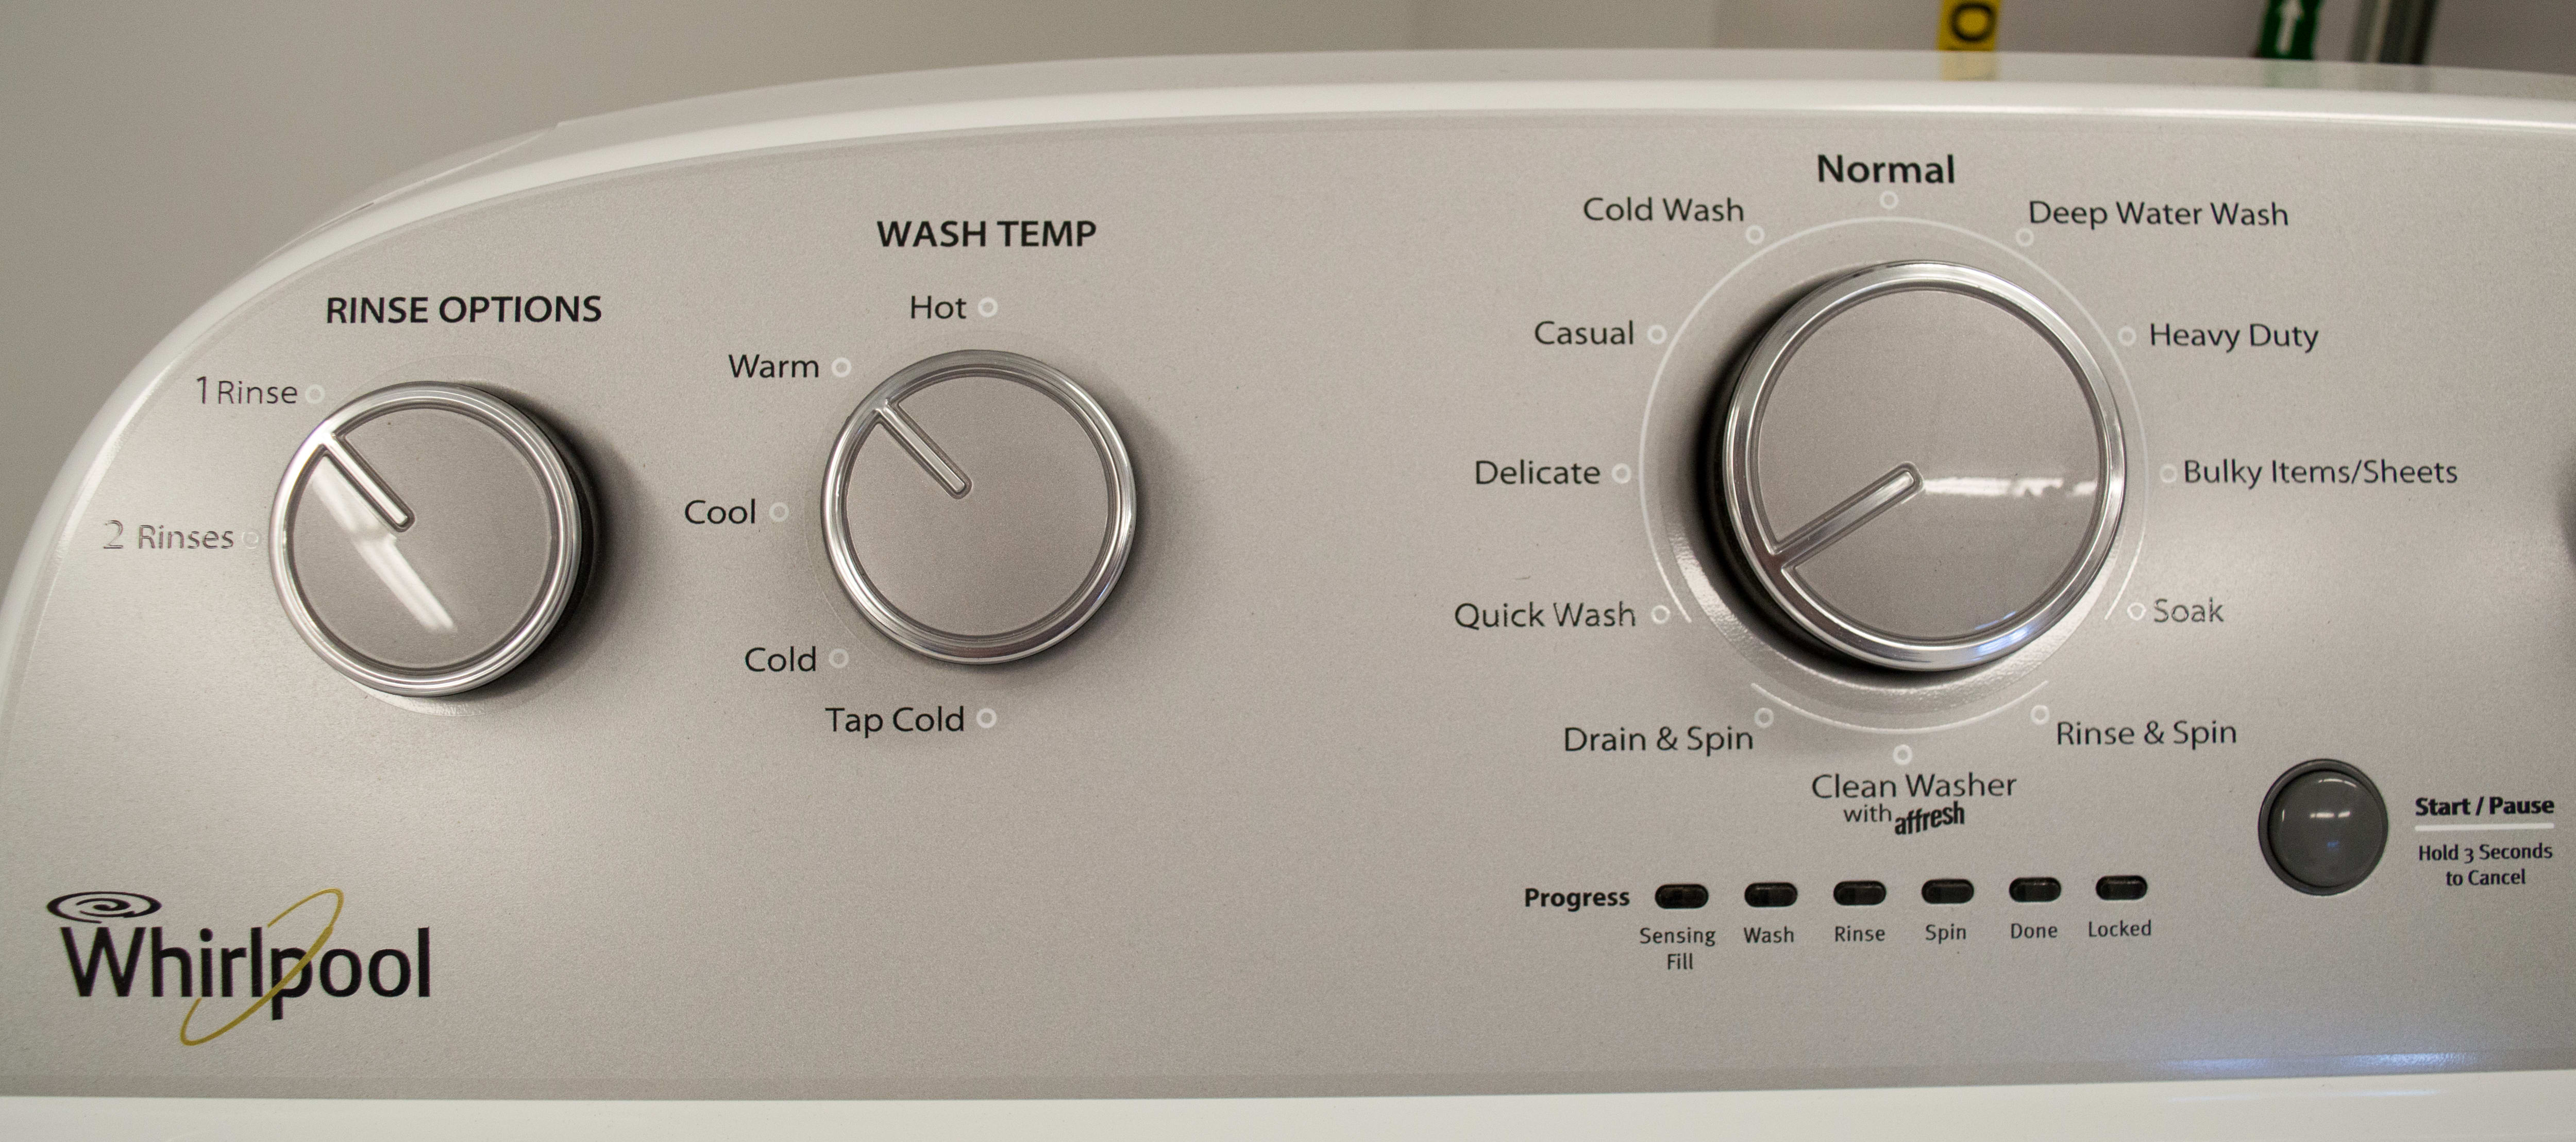 The WTW4915EW lets you micromanage your laundry.